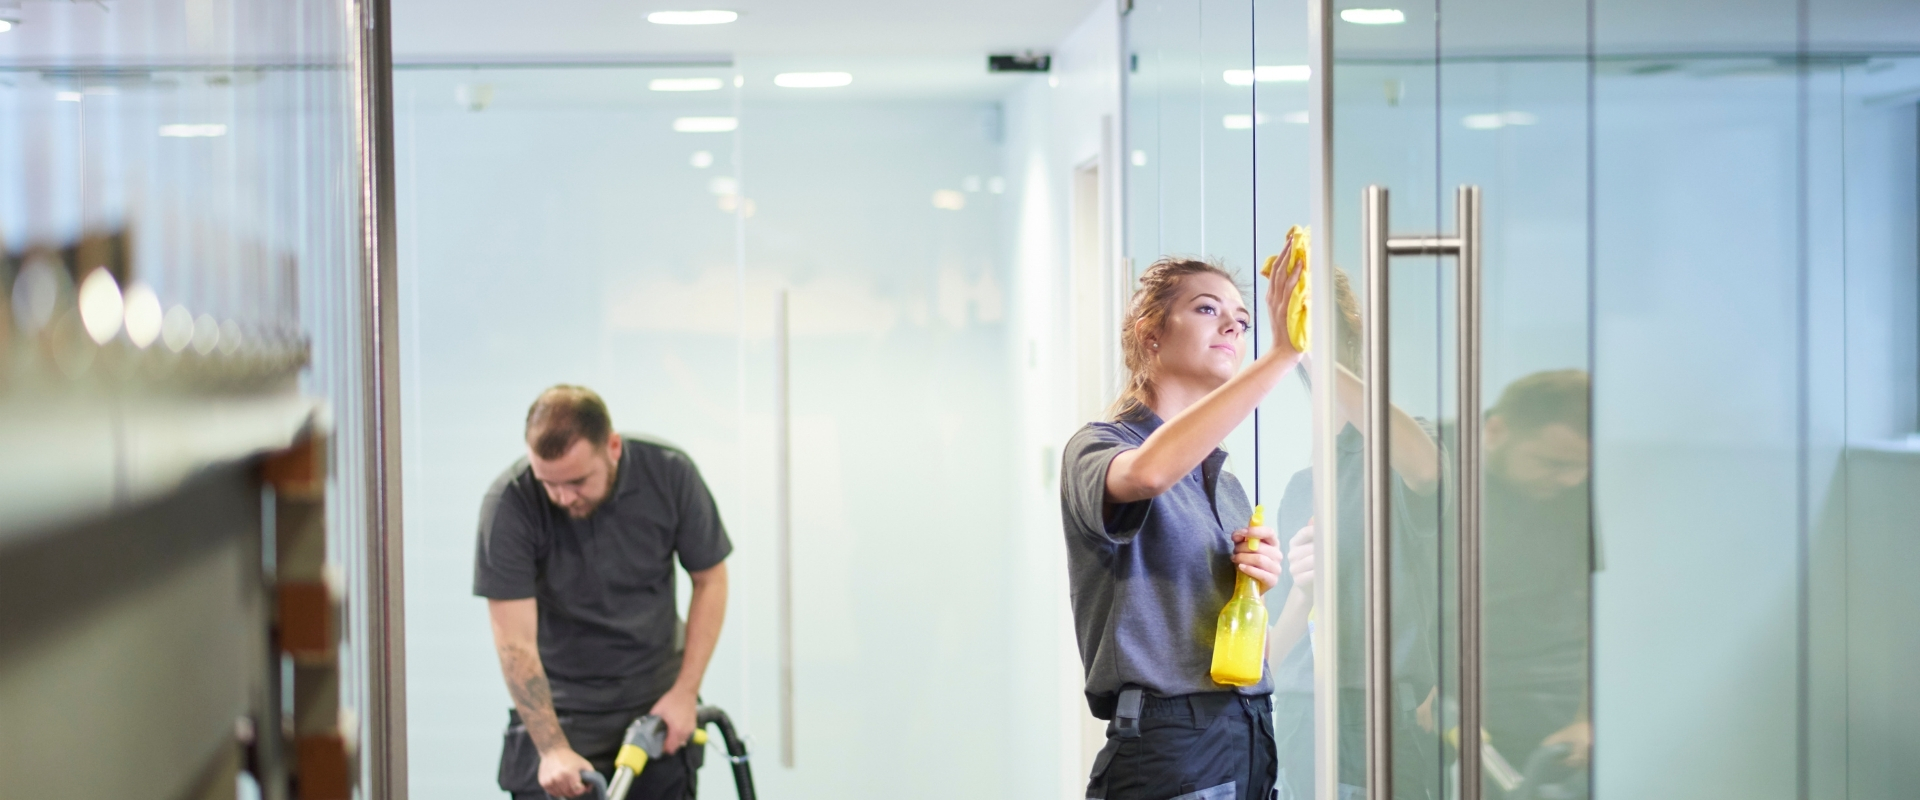 picture of a man and woman cleaning a commercial building entrance